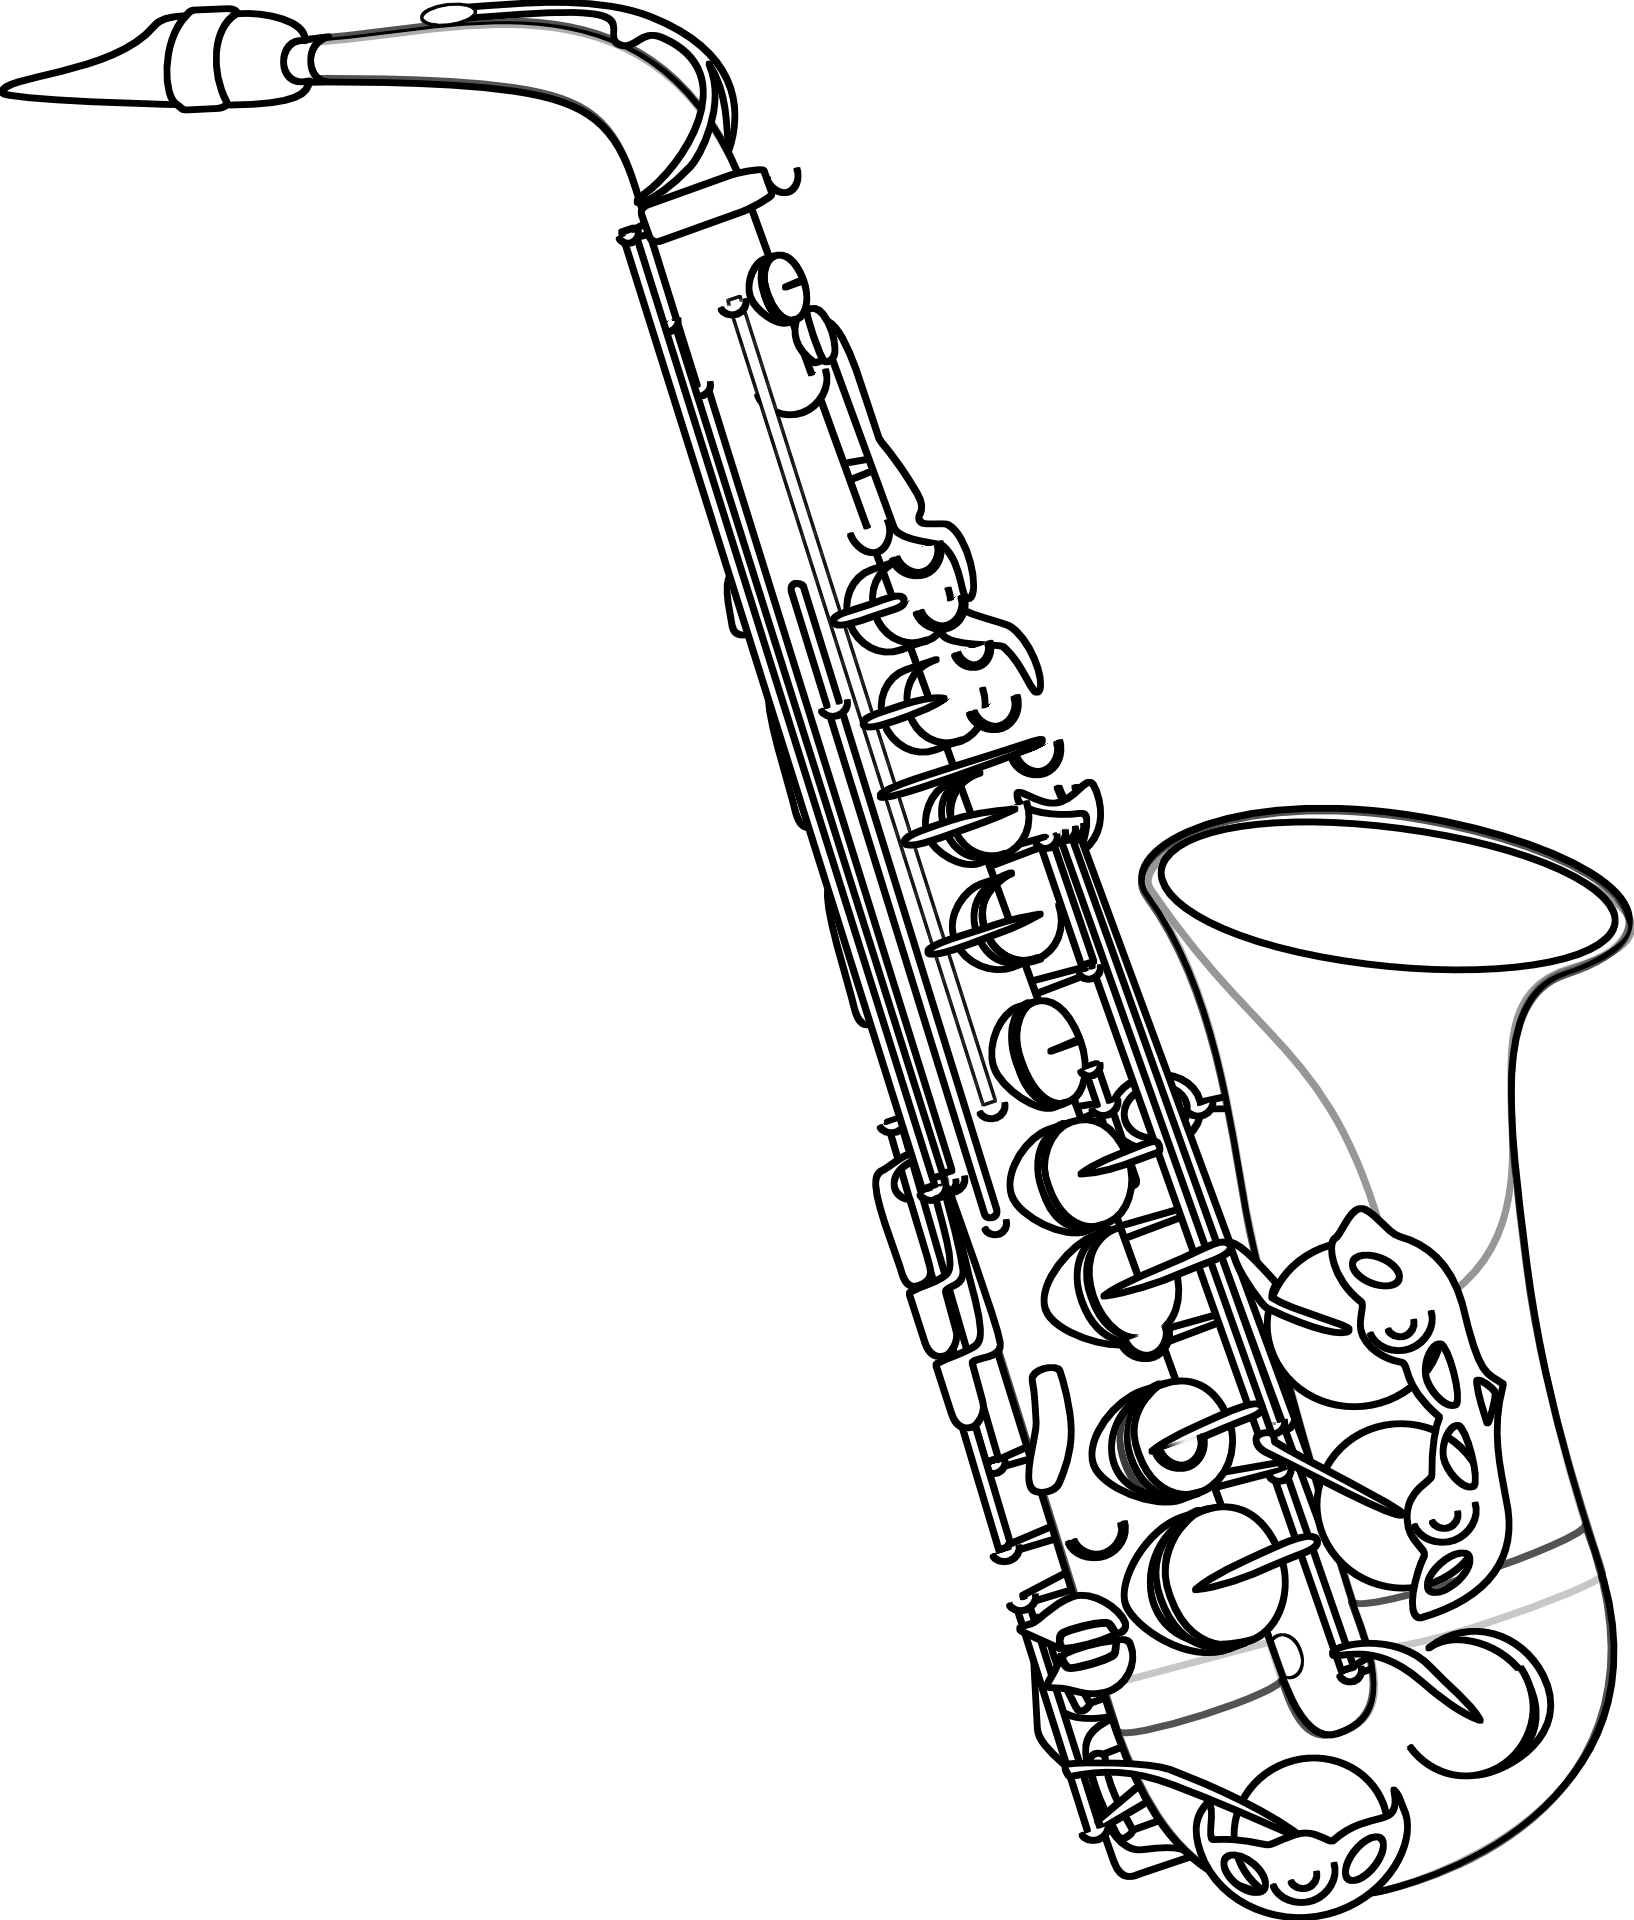 September 11 Coloring Pages For Kids Sketch Coloring Page